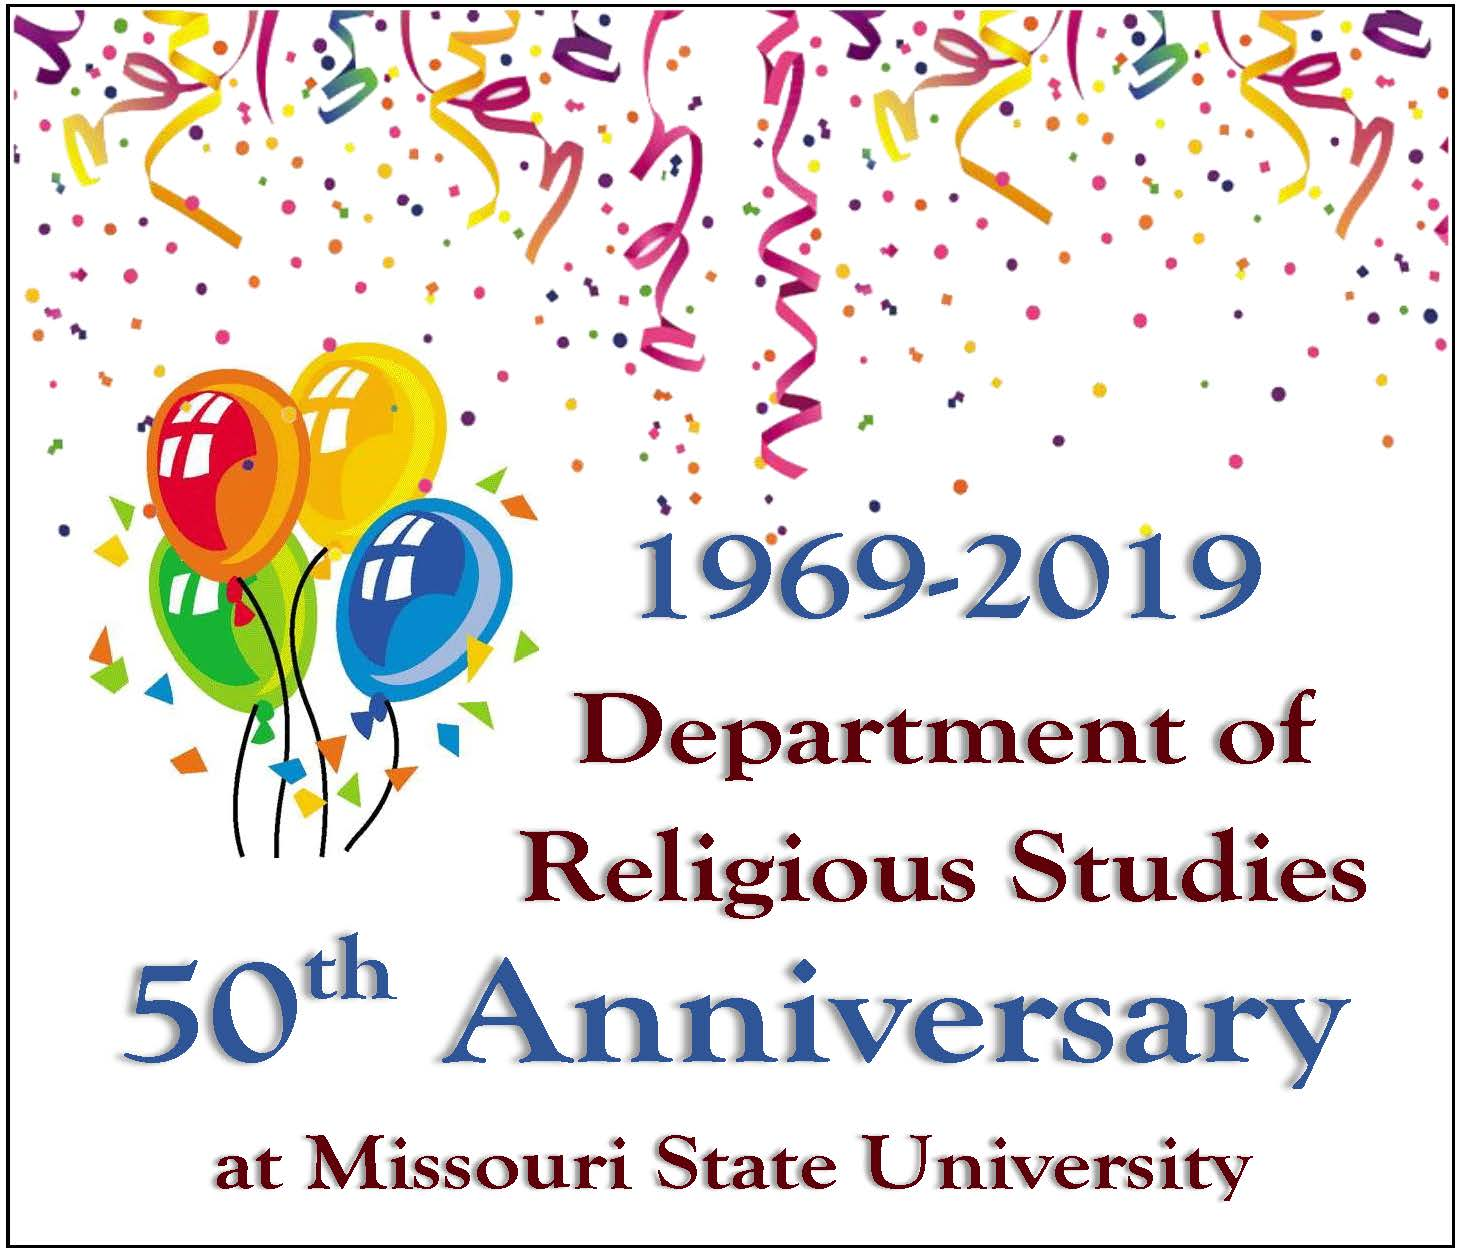 1969-2019 Department of Religious Studies 50th Anniversary at Missouri State University